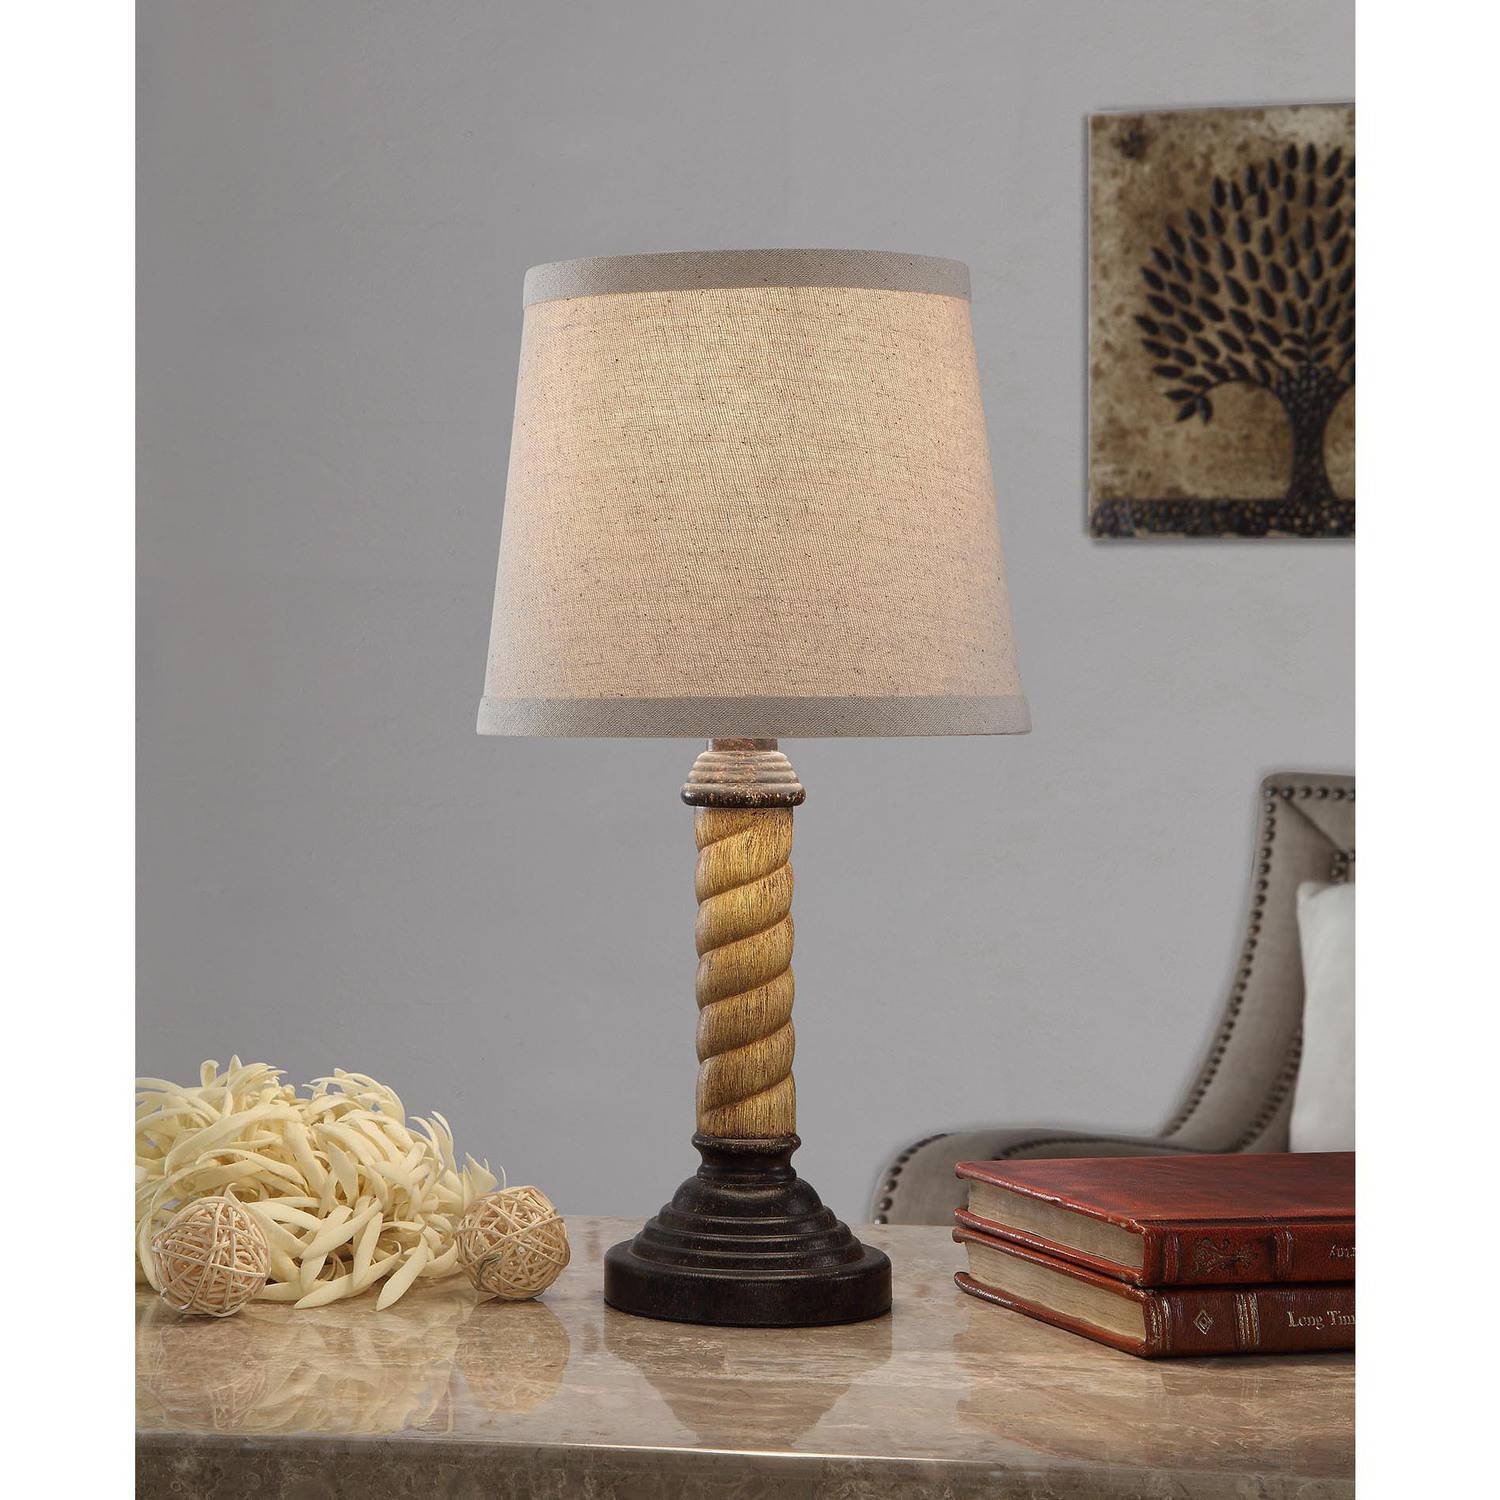 Mainstays Twist Accent Lamp, Two-Toned Wood Look Finish by Mastercraft Distribution USA Inc